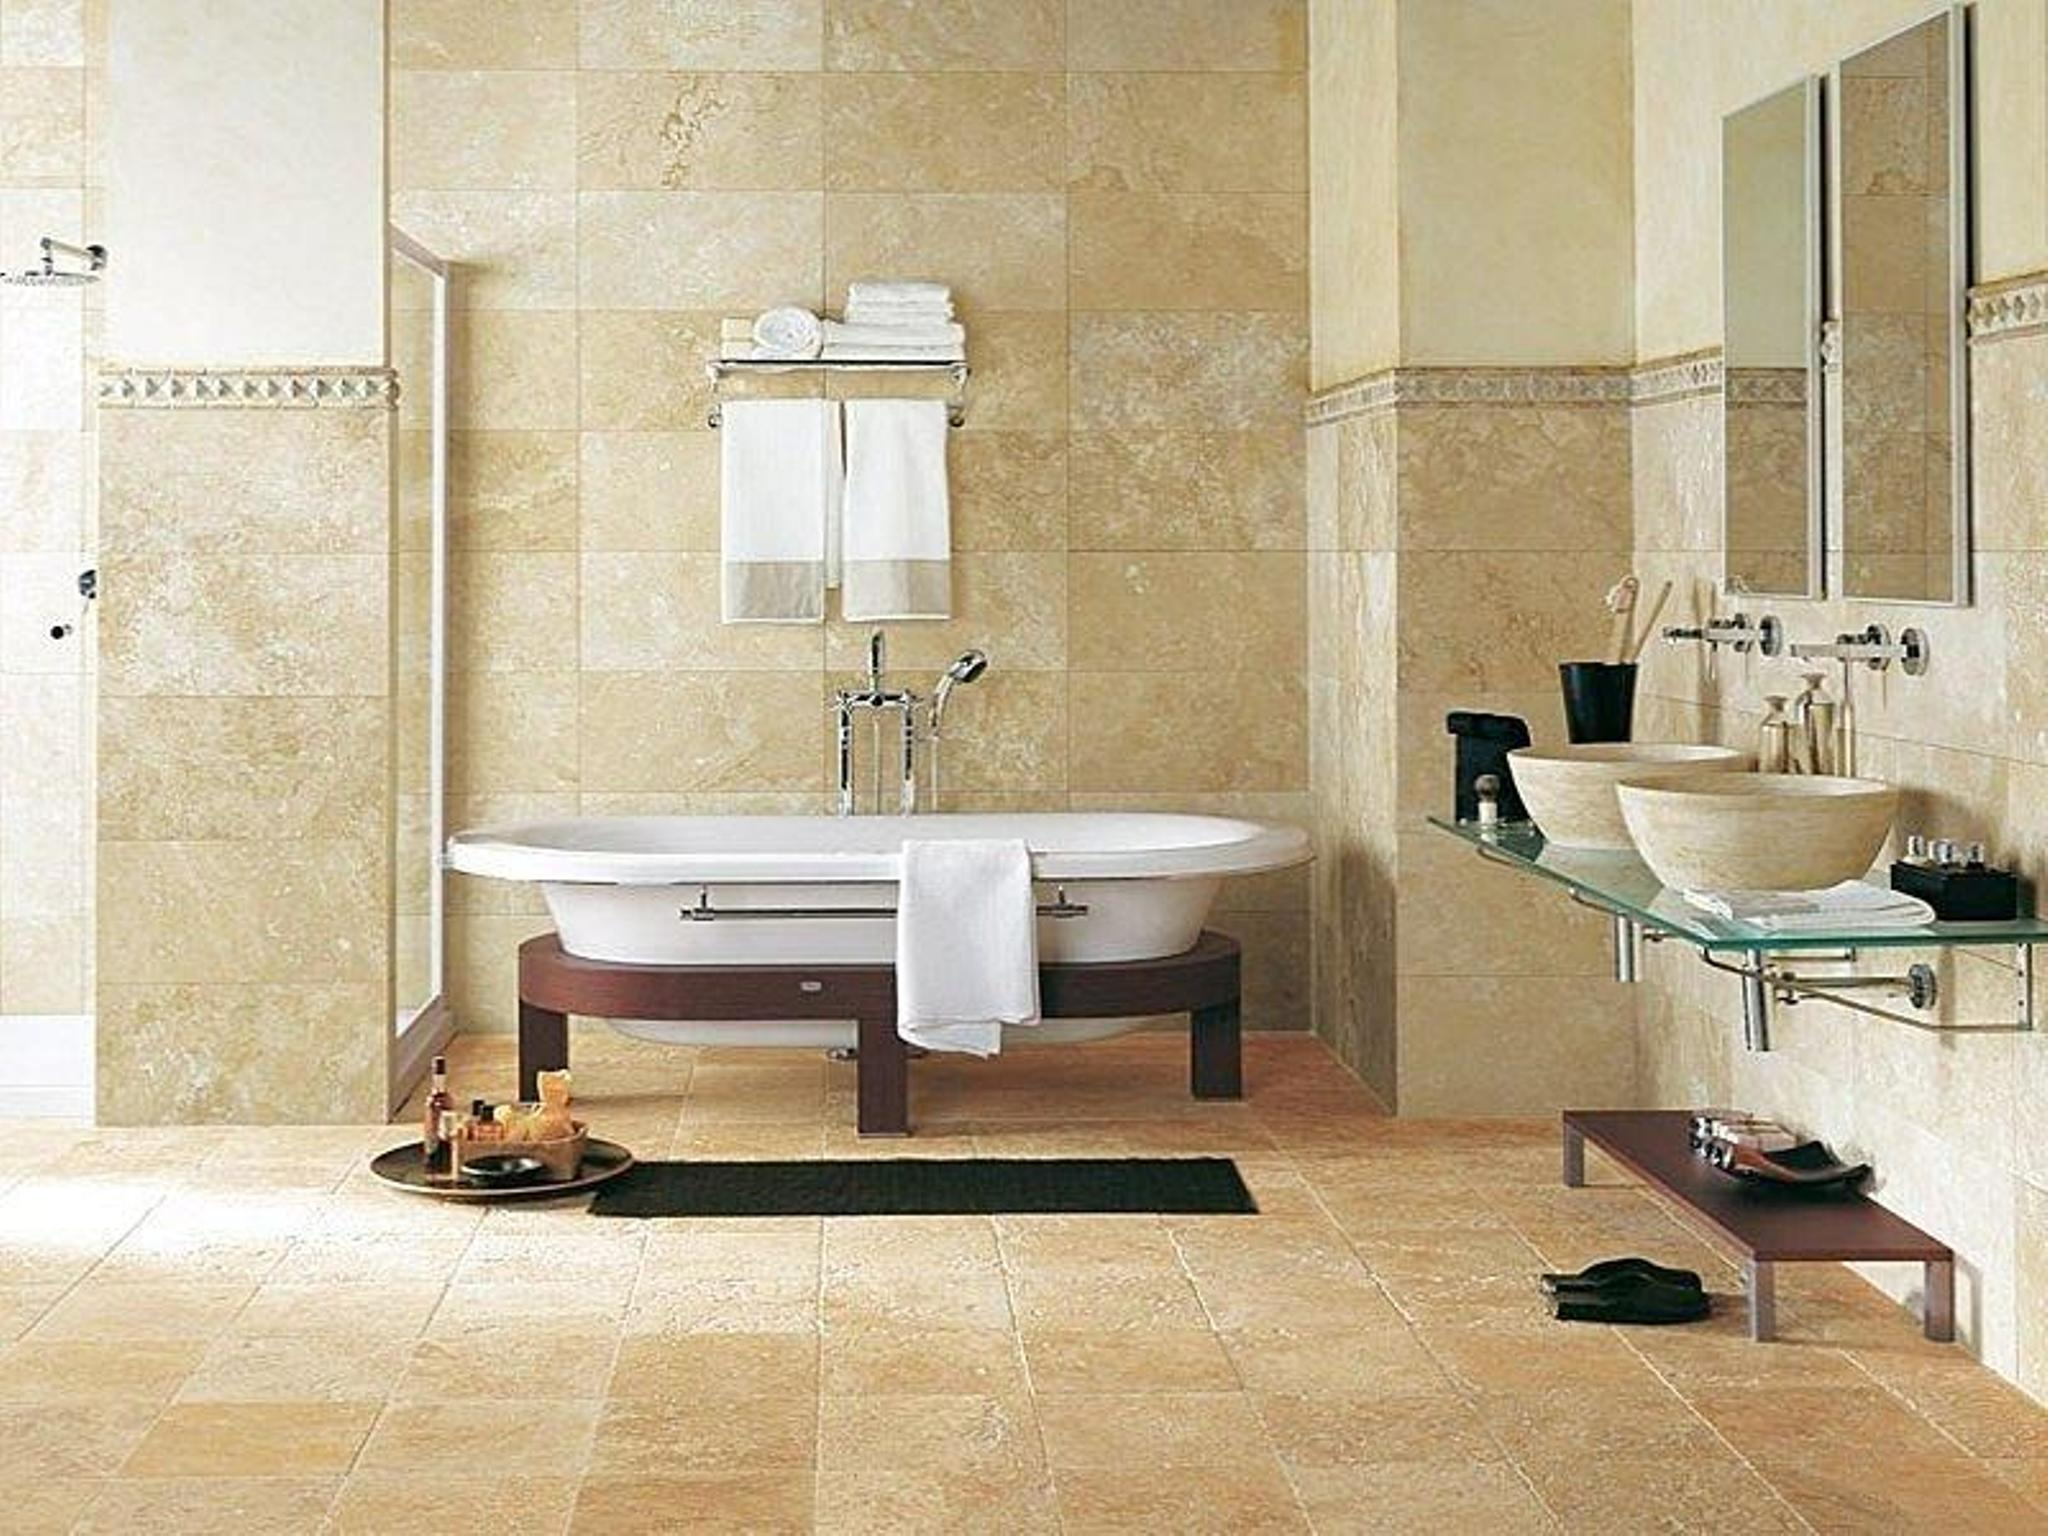 Travertine Tile For Bathroom Floor